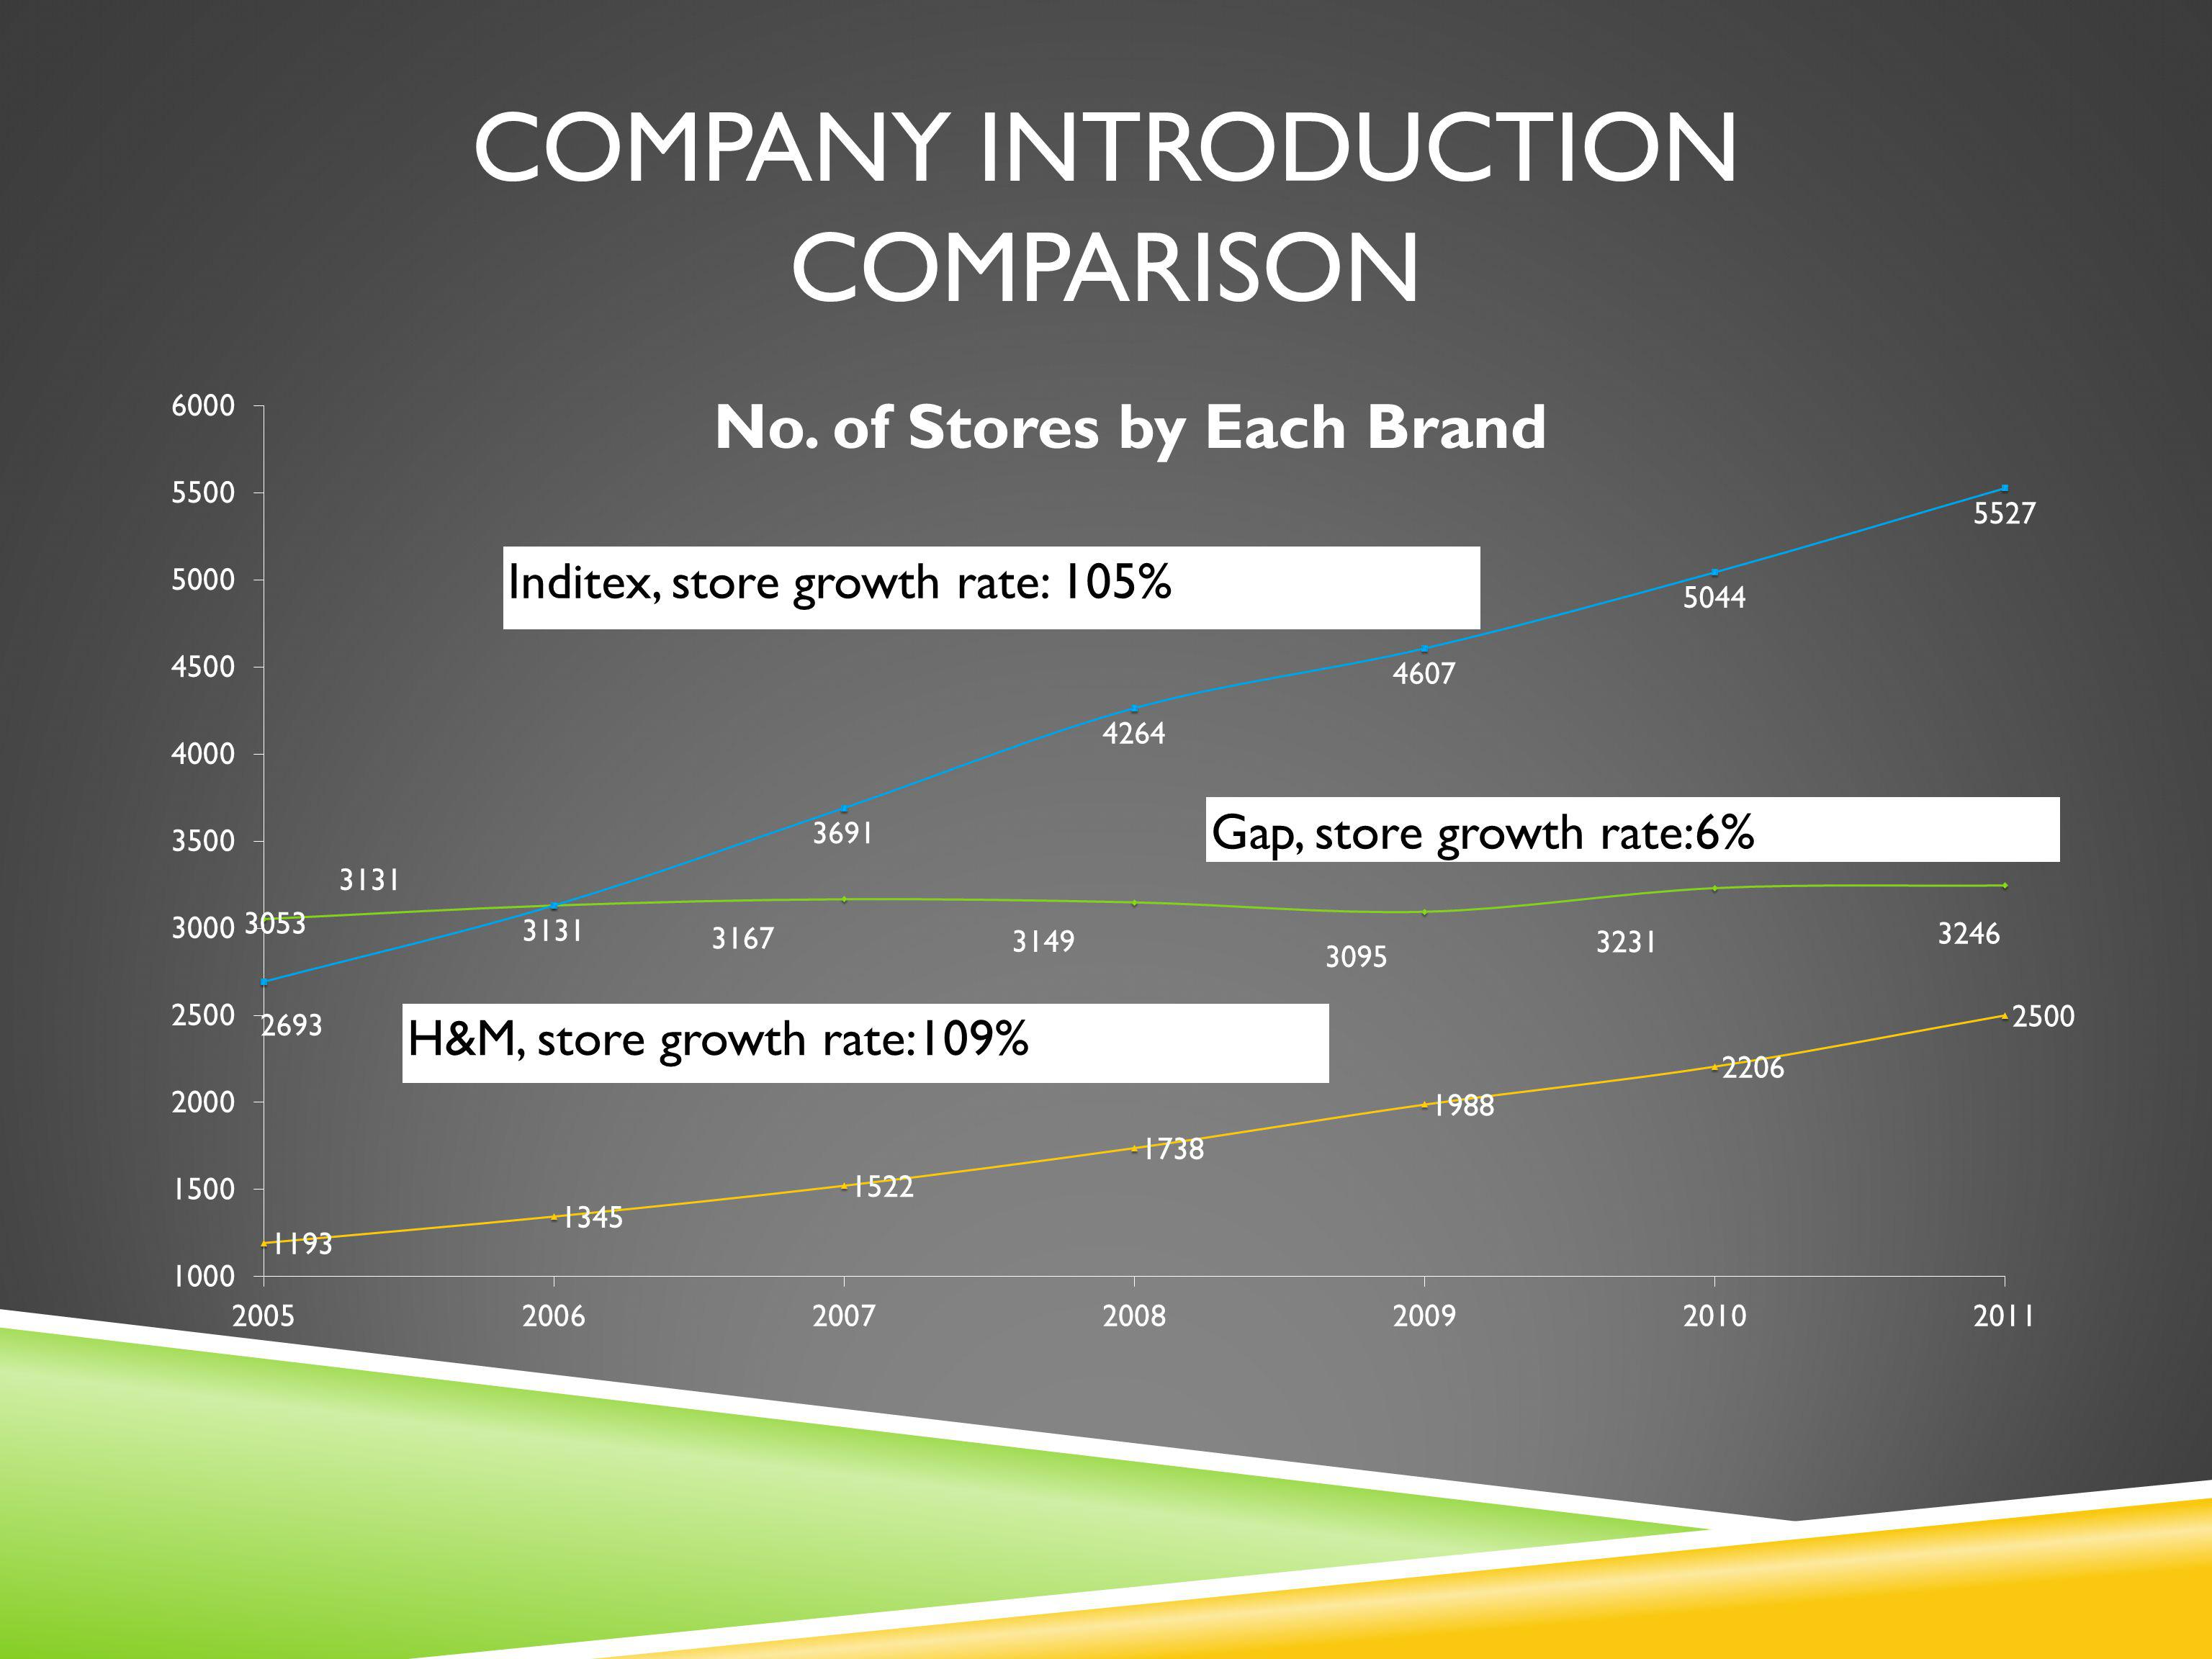 Inditex, store growth rate: 105% Gap, store growth rate:6% H&M, store growth rate:109% COMPANY INTRODUCTION COMPARISON